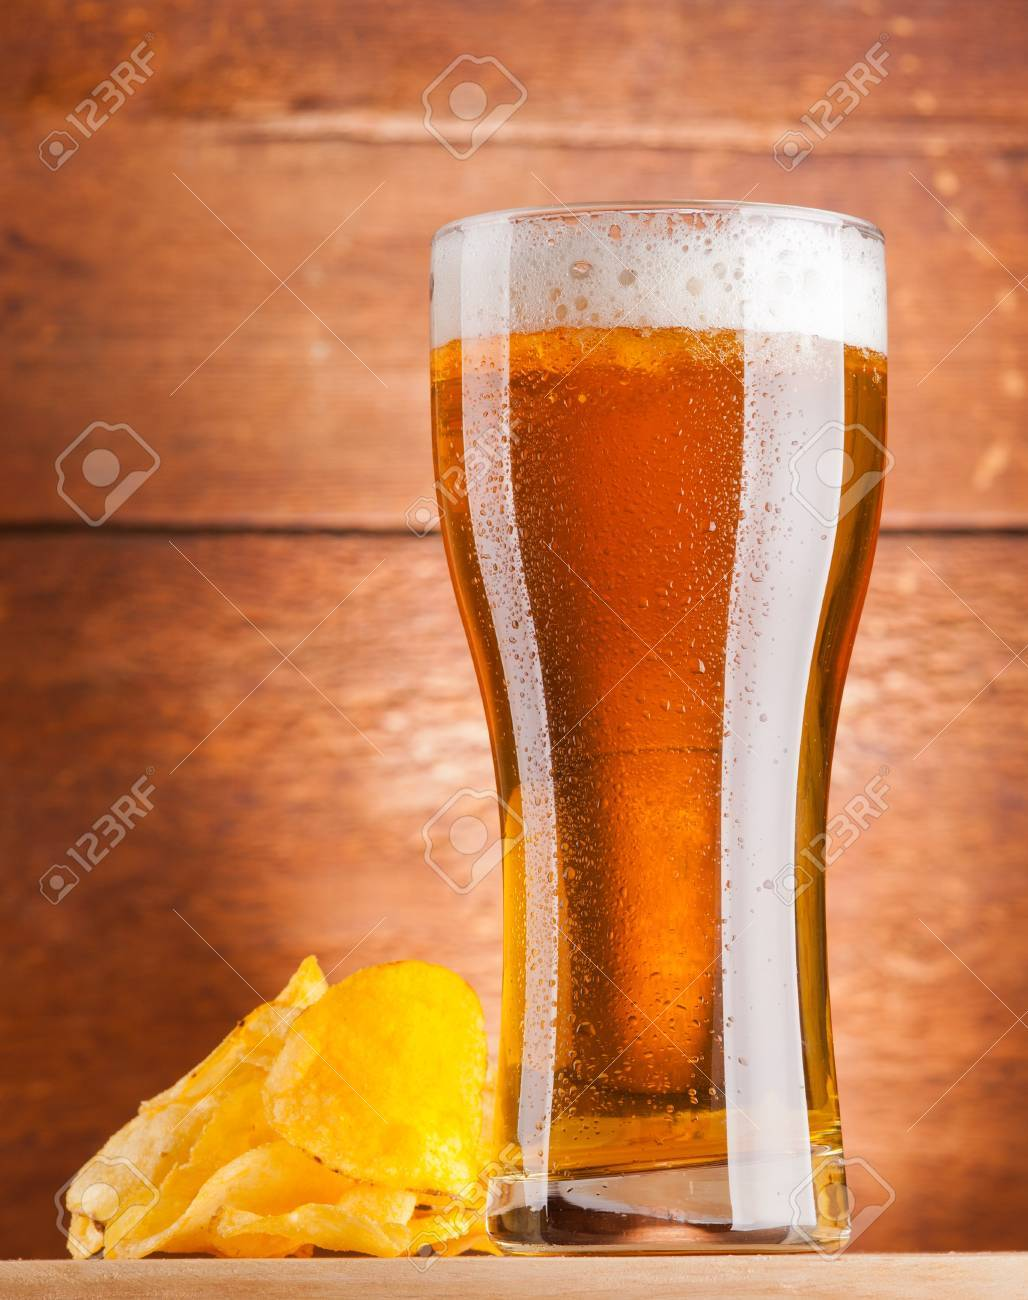 glass of fresh golden beer with potato chips Stock Photo - 12185513